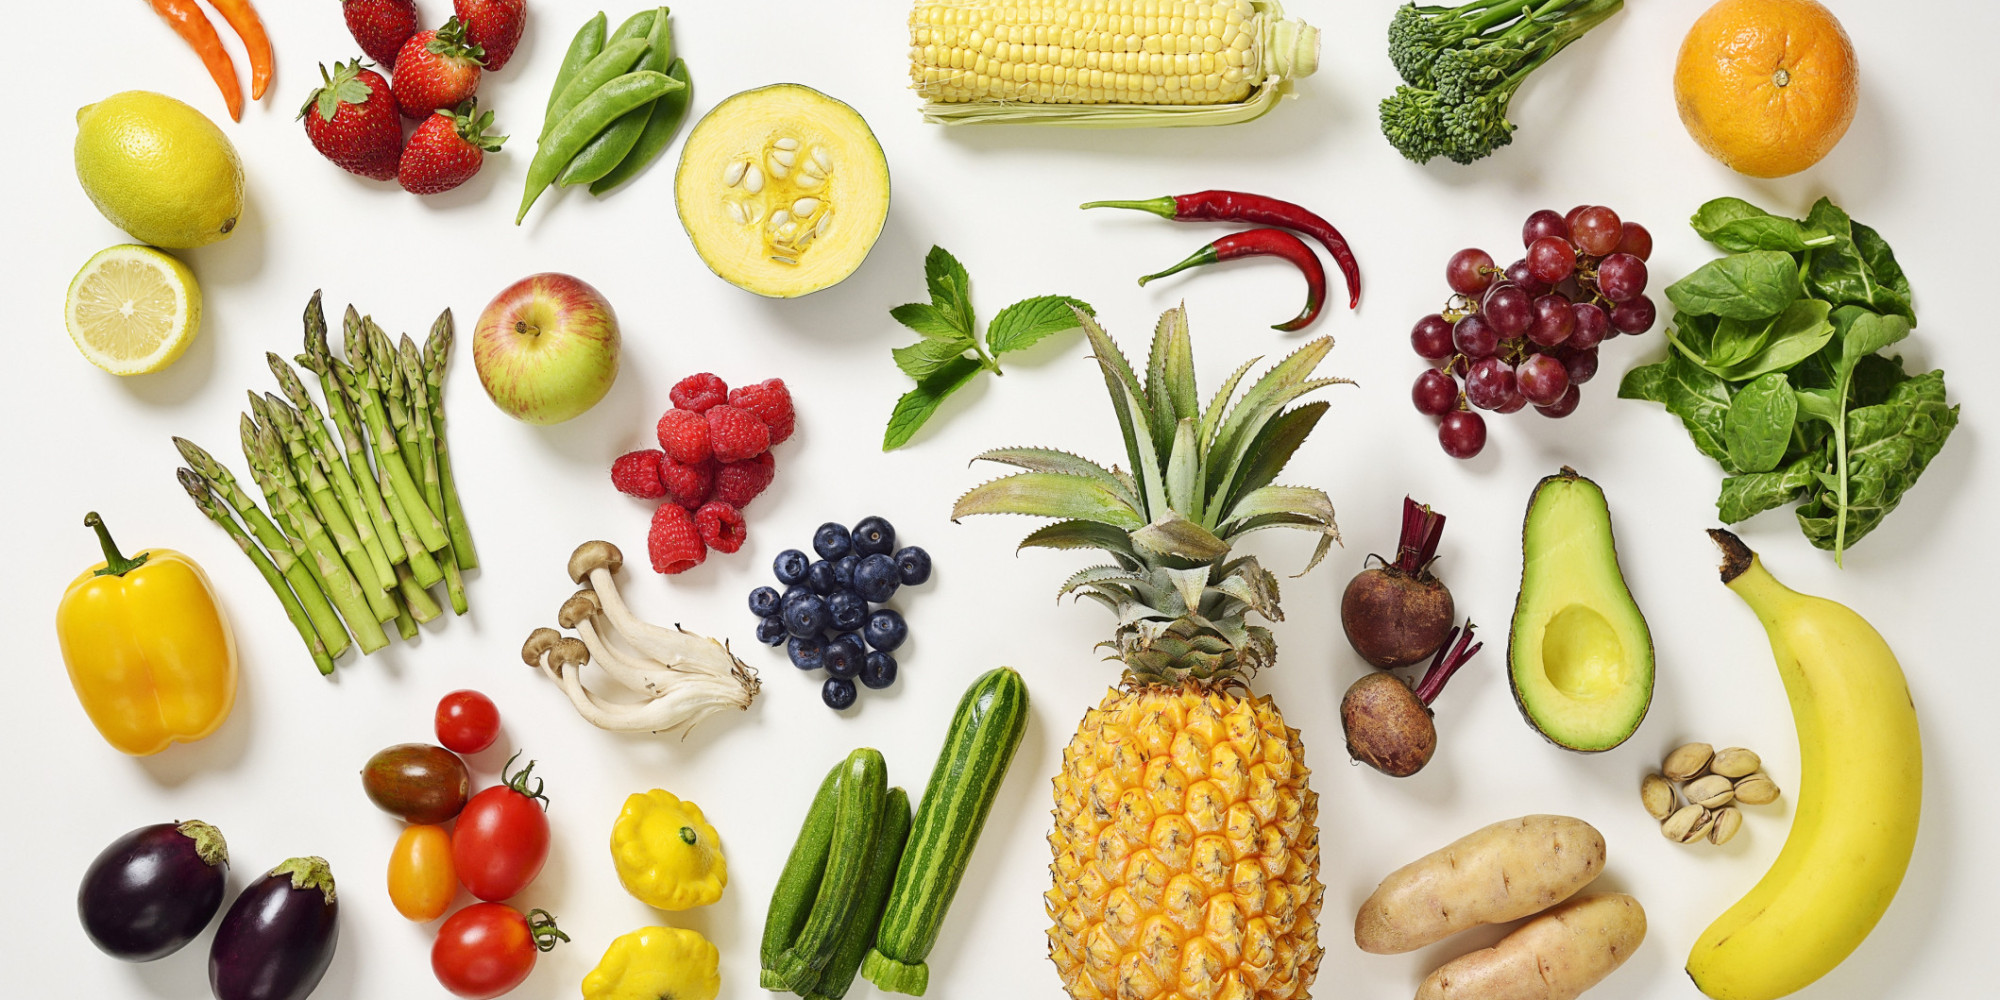 Foods To Eat For Good Brain Health